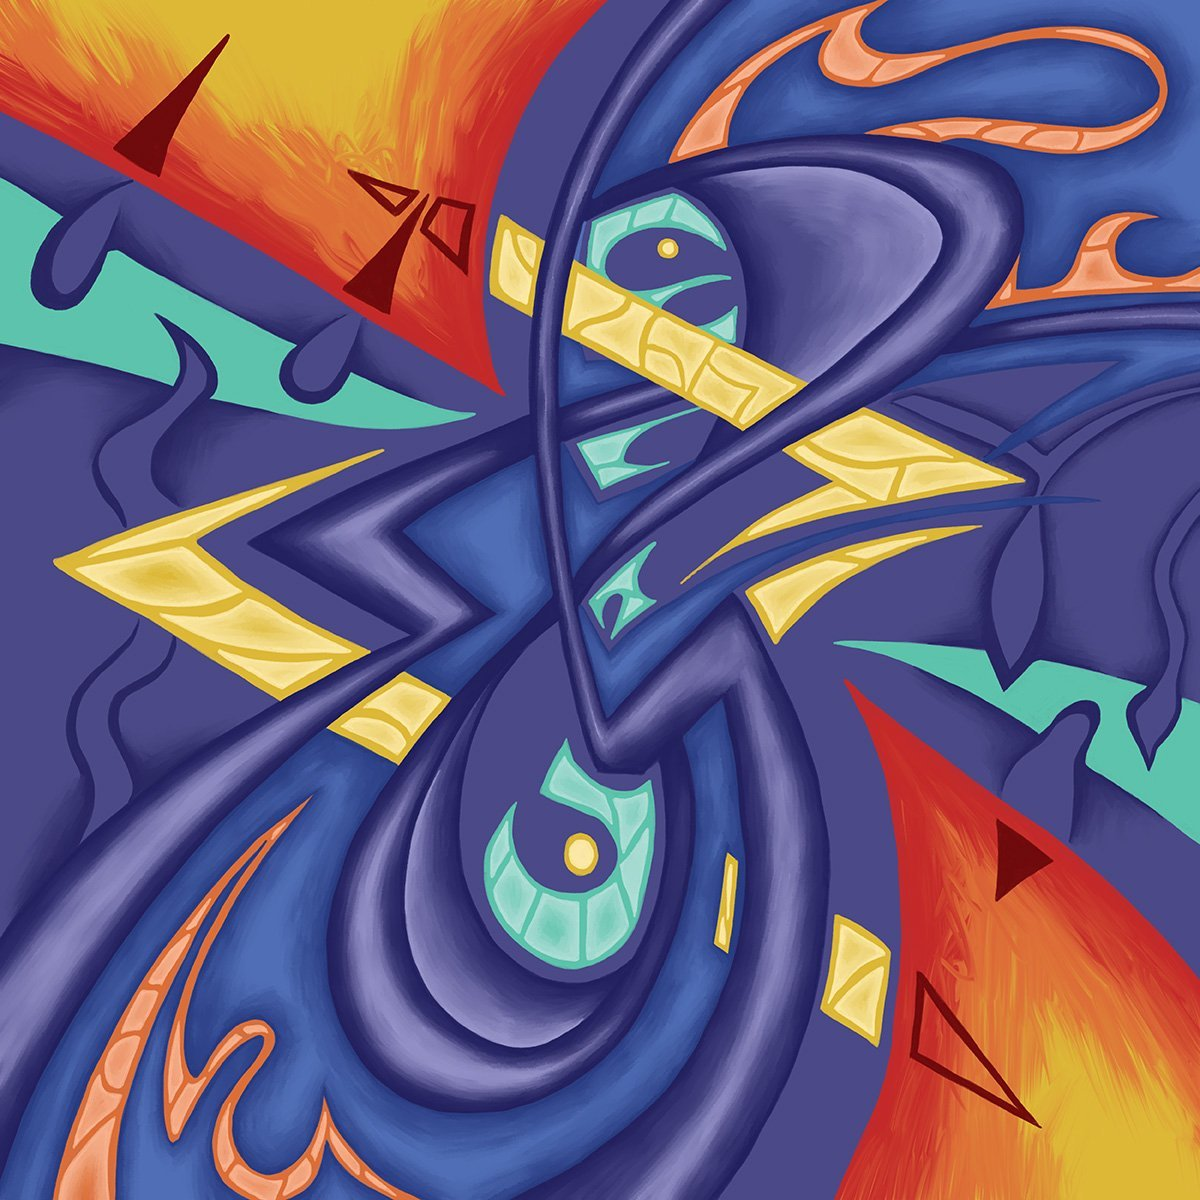 This is an abstract piece of artwork based on a handwritten treble clef by Bach. The piece has been created by Jina Wallwork.